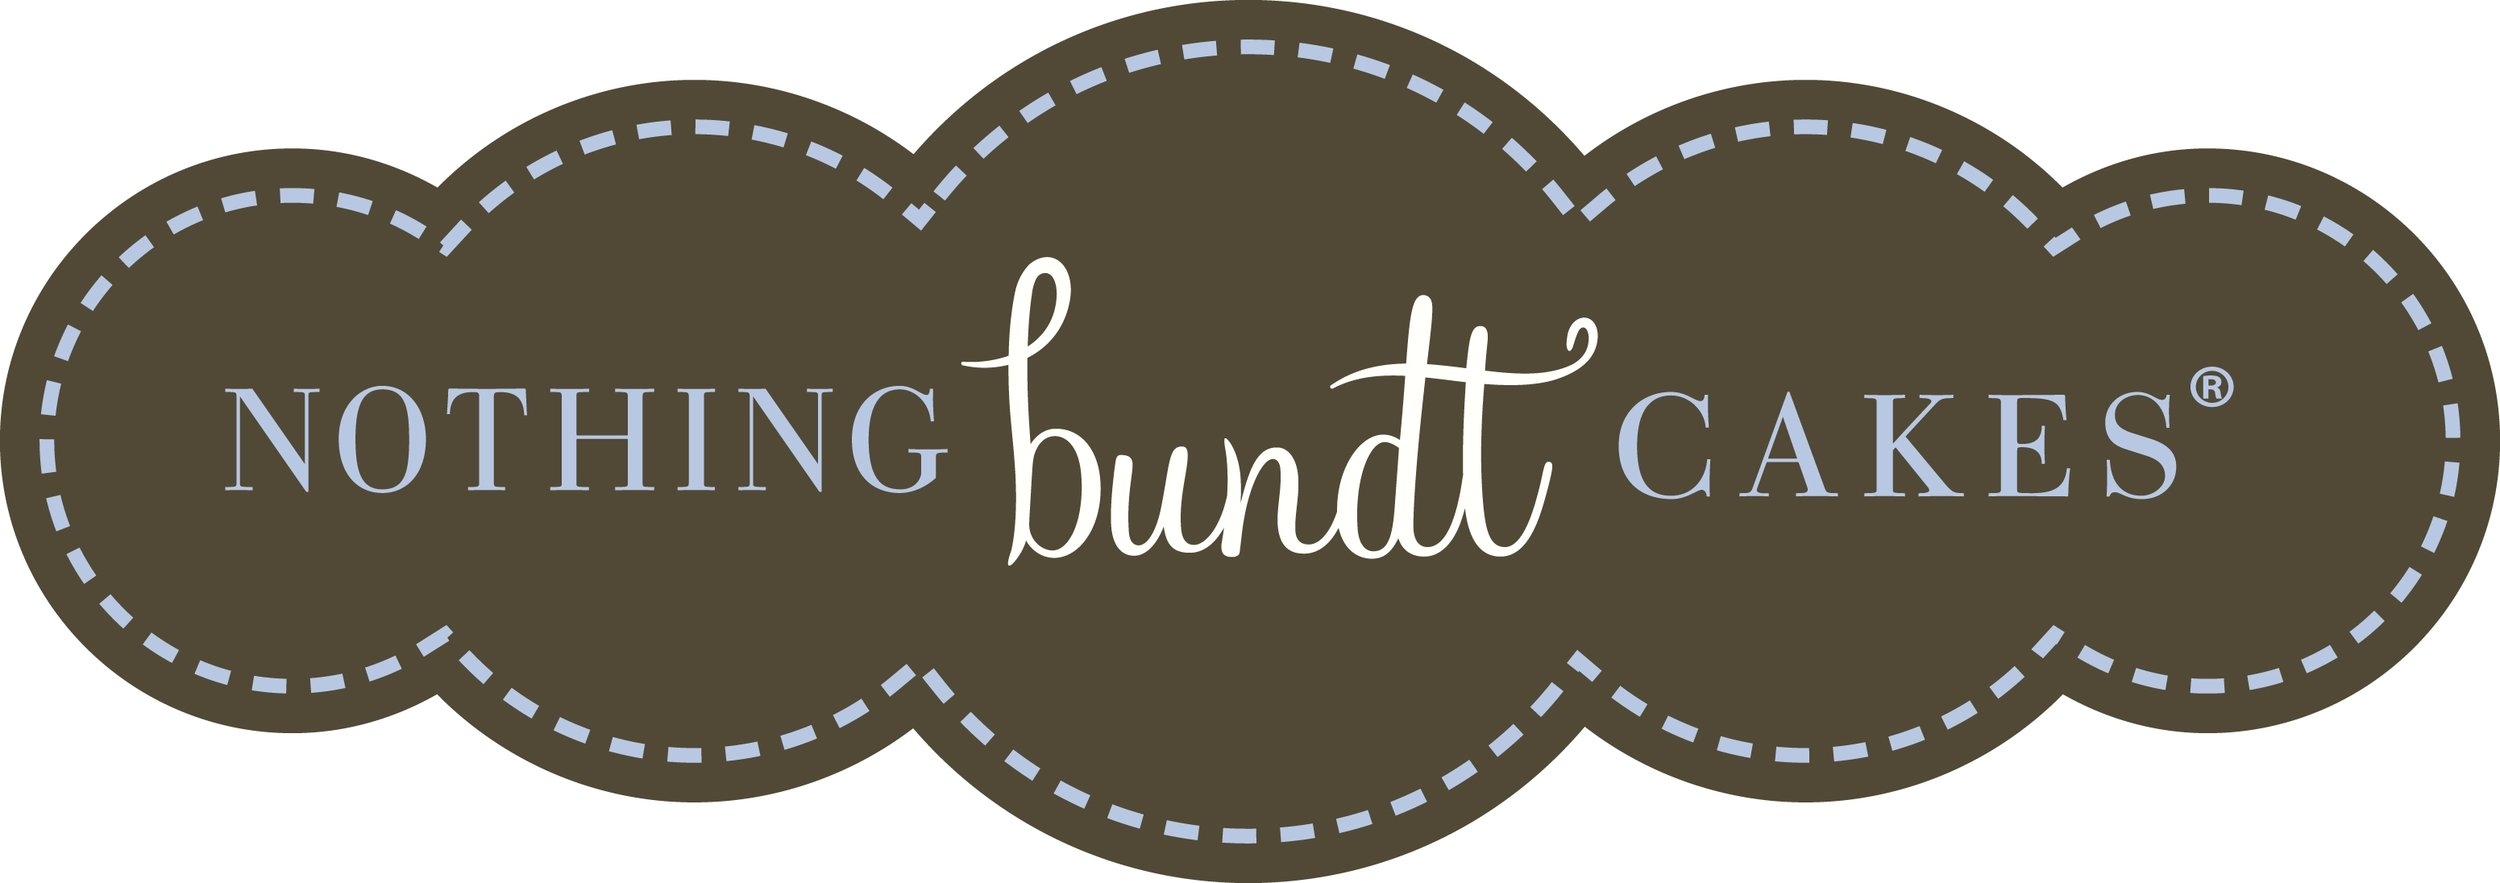 Nothing Bundt Cakes.logo.website.jpg